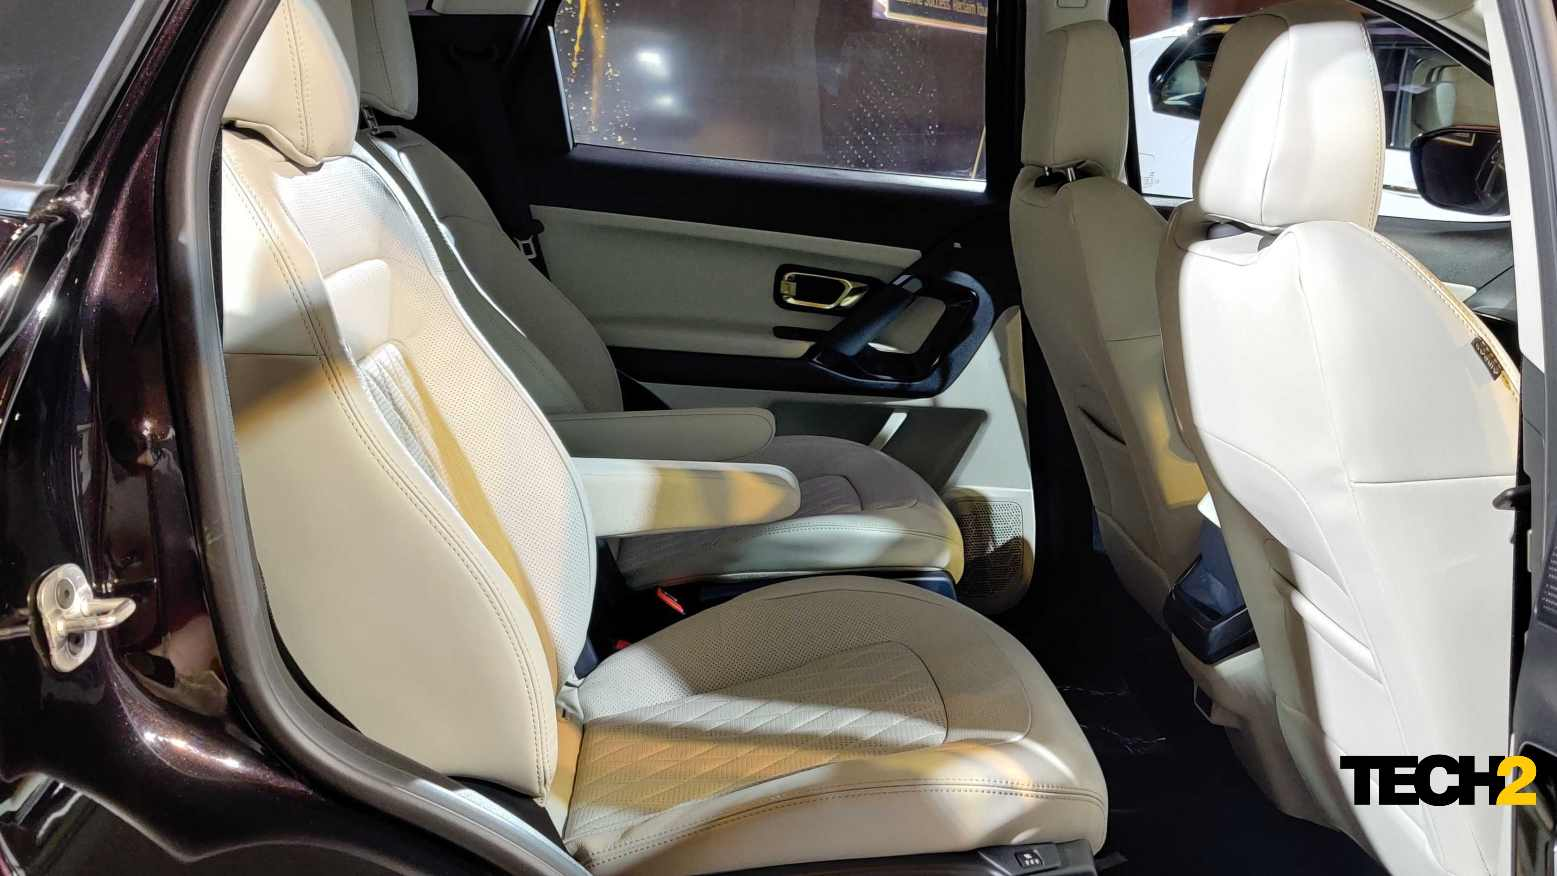 Ventilated second-row seats (only on the six-seat model) will be a huge draw for many buyers. Image: Tech2/Amaan Ahmed